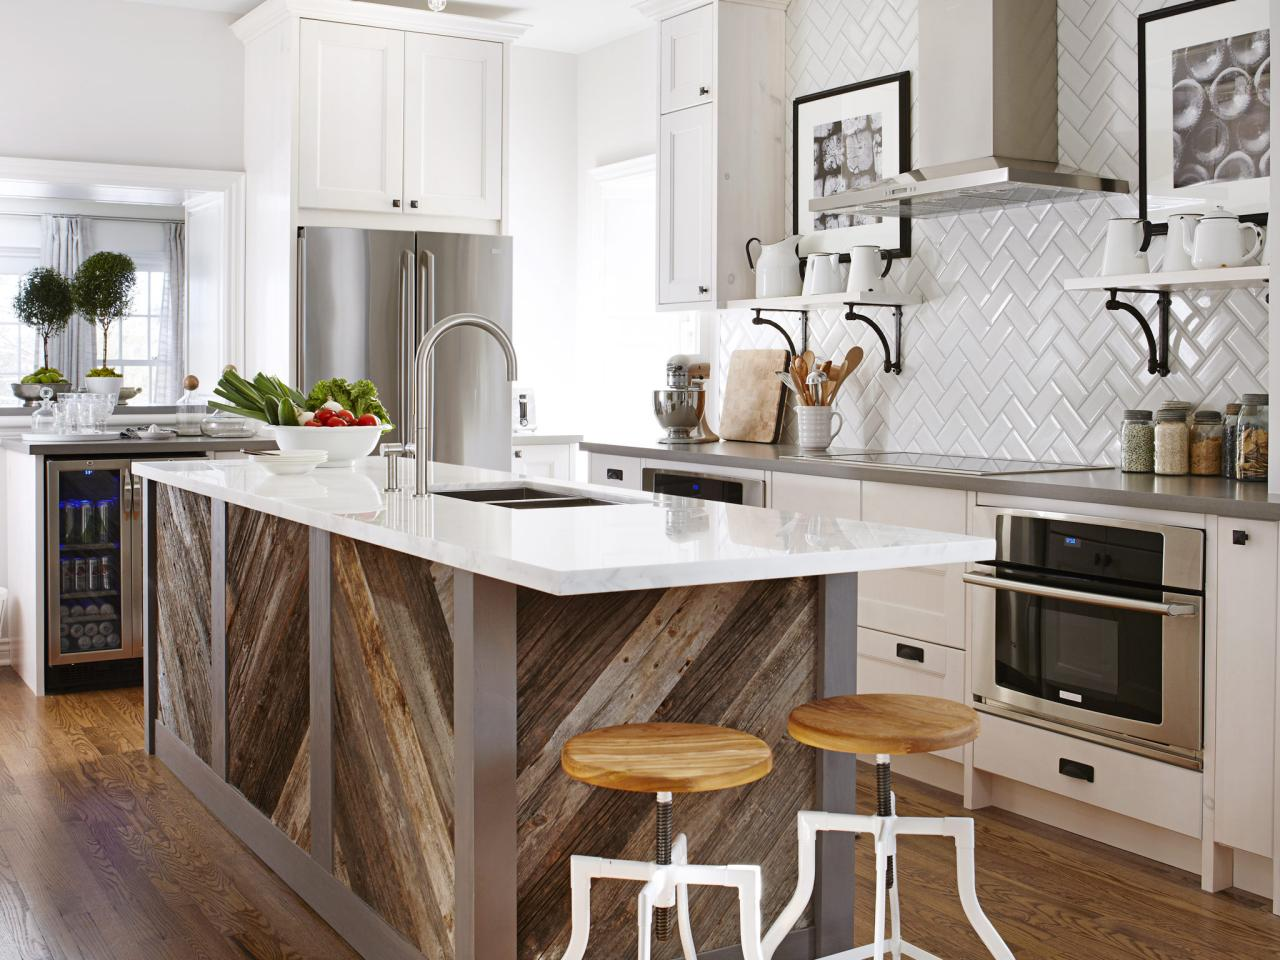 Kitchen design tips from hgtv 39 s sarah richardson kitchen for Kitchen ideas pinterest